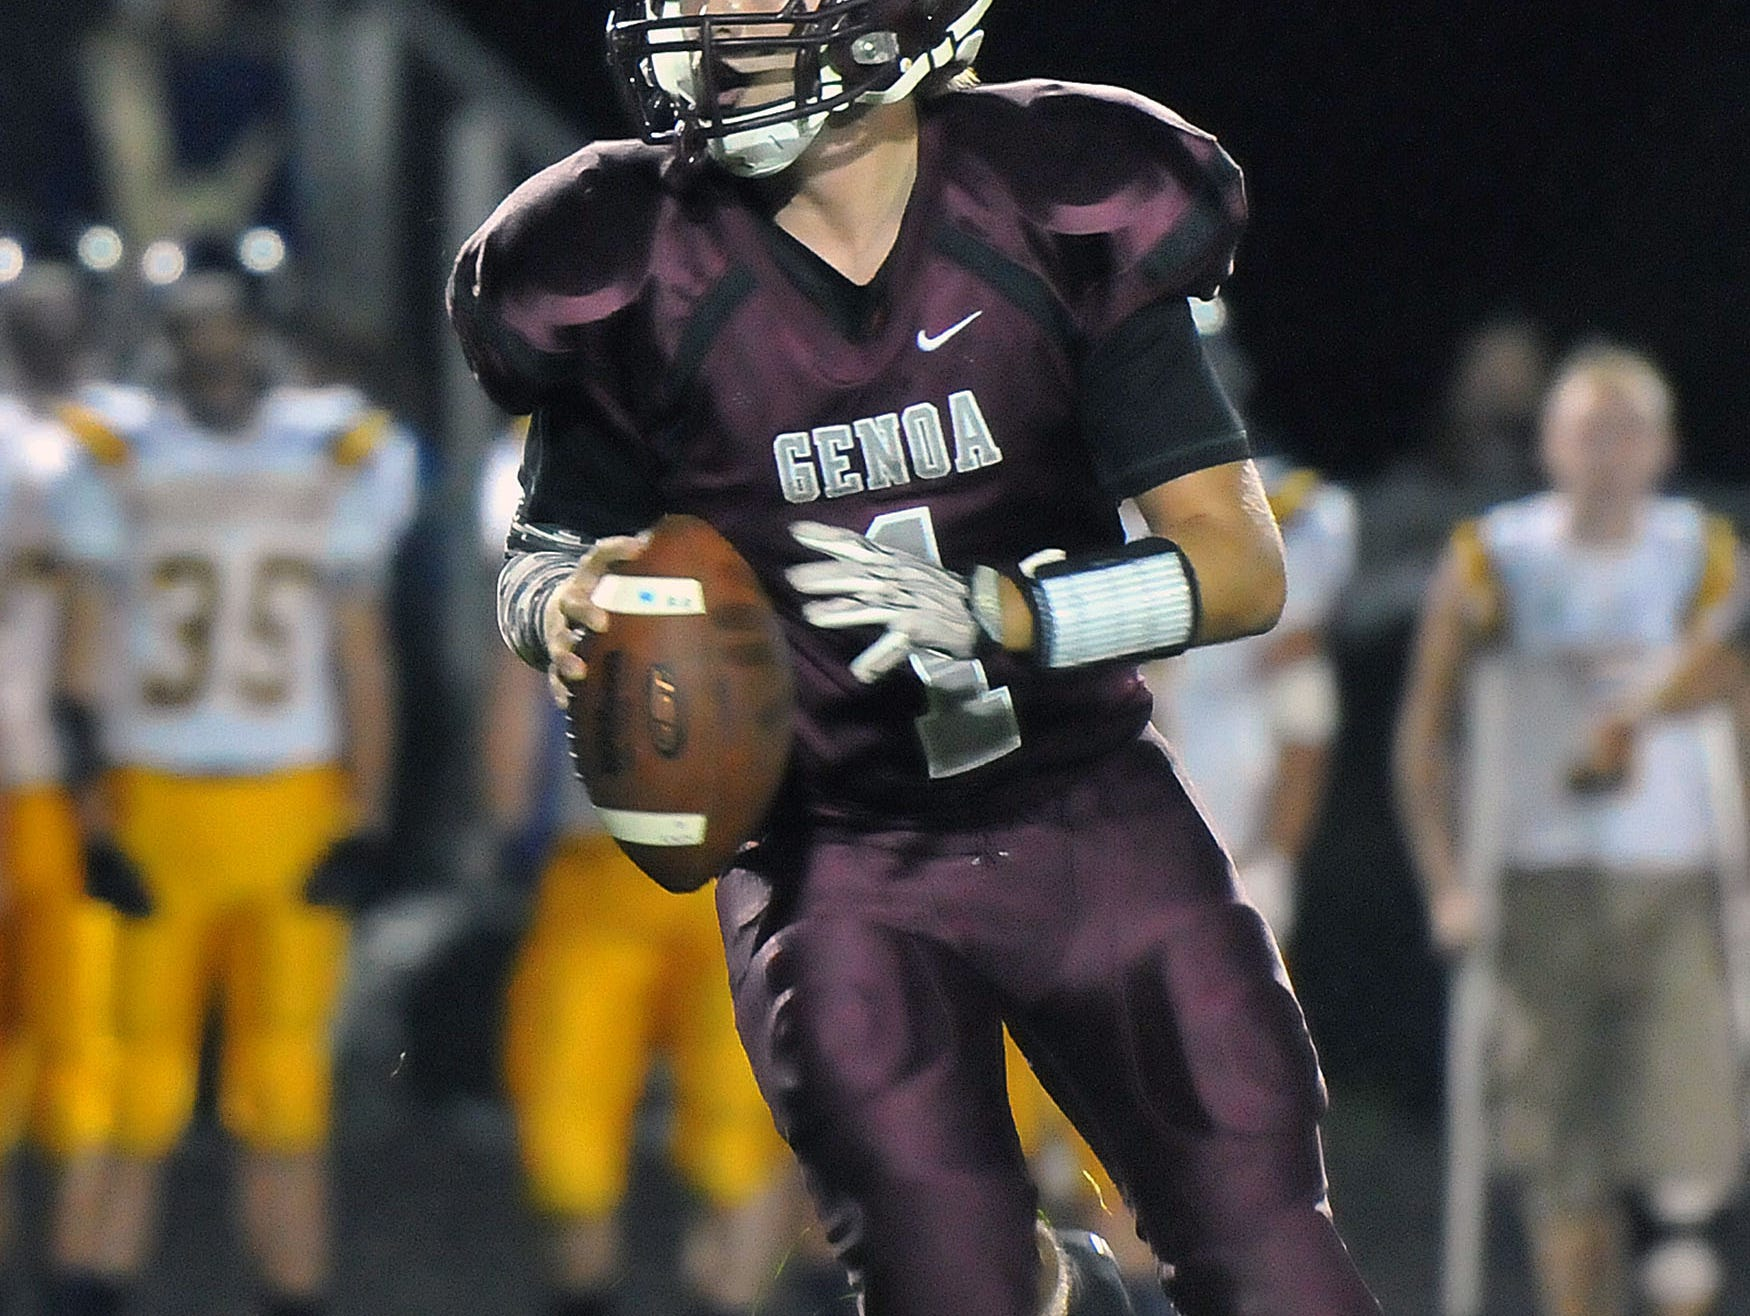 Genoa's Zach Grodi prepares to throw the ball during Friday night's game at home versus the Woodmore Wildcats.